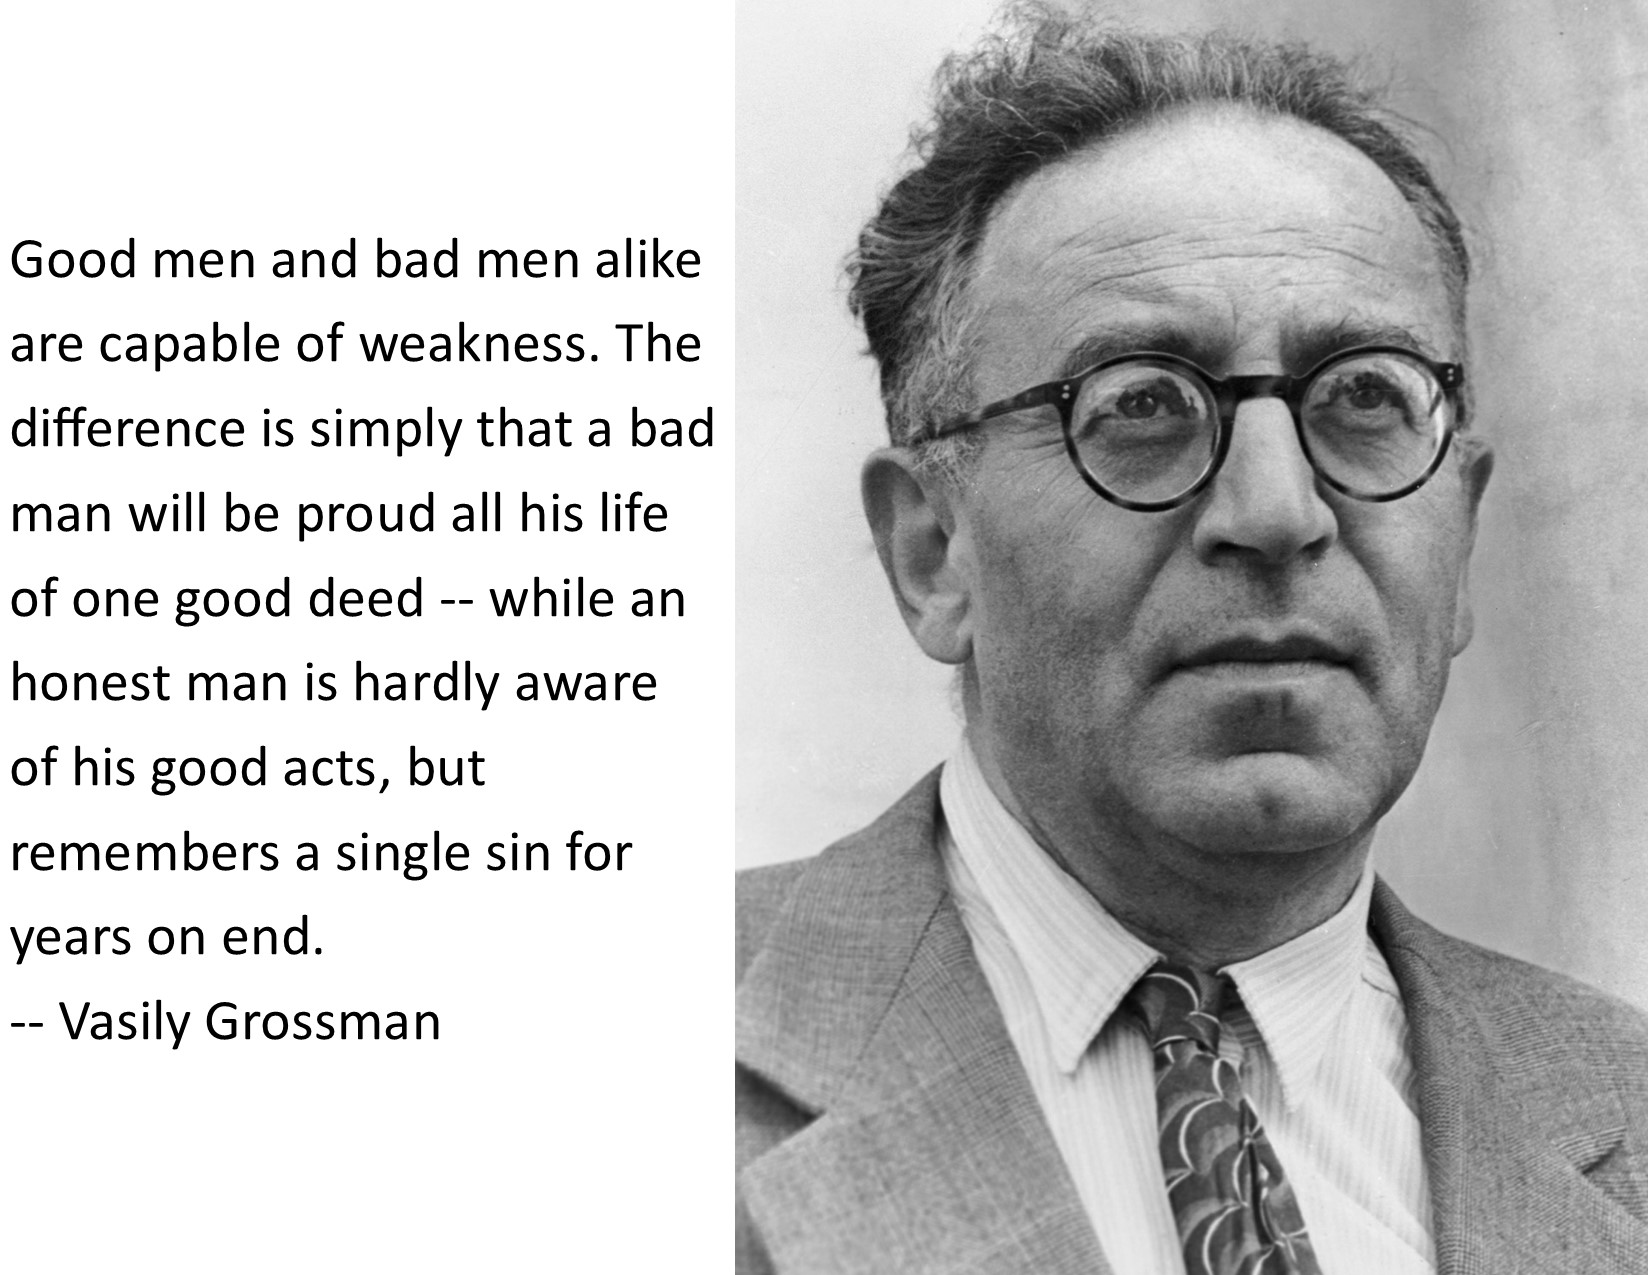 """""""Good men and bad men alike are capable of weakness. The difference is simply that a bad man will be proud all his life of one good deed — while an honest man is hardly aware of his good acts, but remembers a single sin for years on end."""" — Vasily Grossman [1650 x 1275]"""